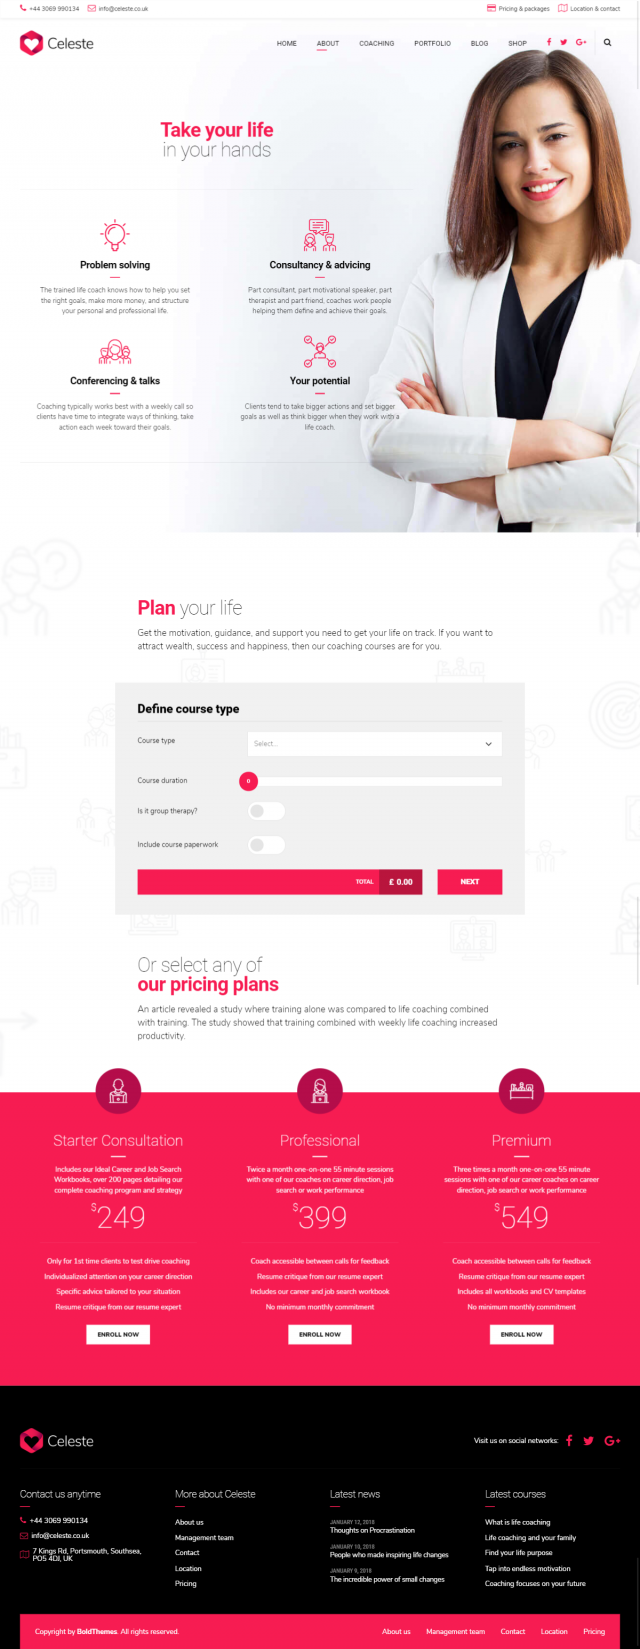 http://cost-calculator.bold-themes.com/new-main-demo/wp-content/uploads/sites/2/2018/04/Celeste-640x1649.png